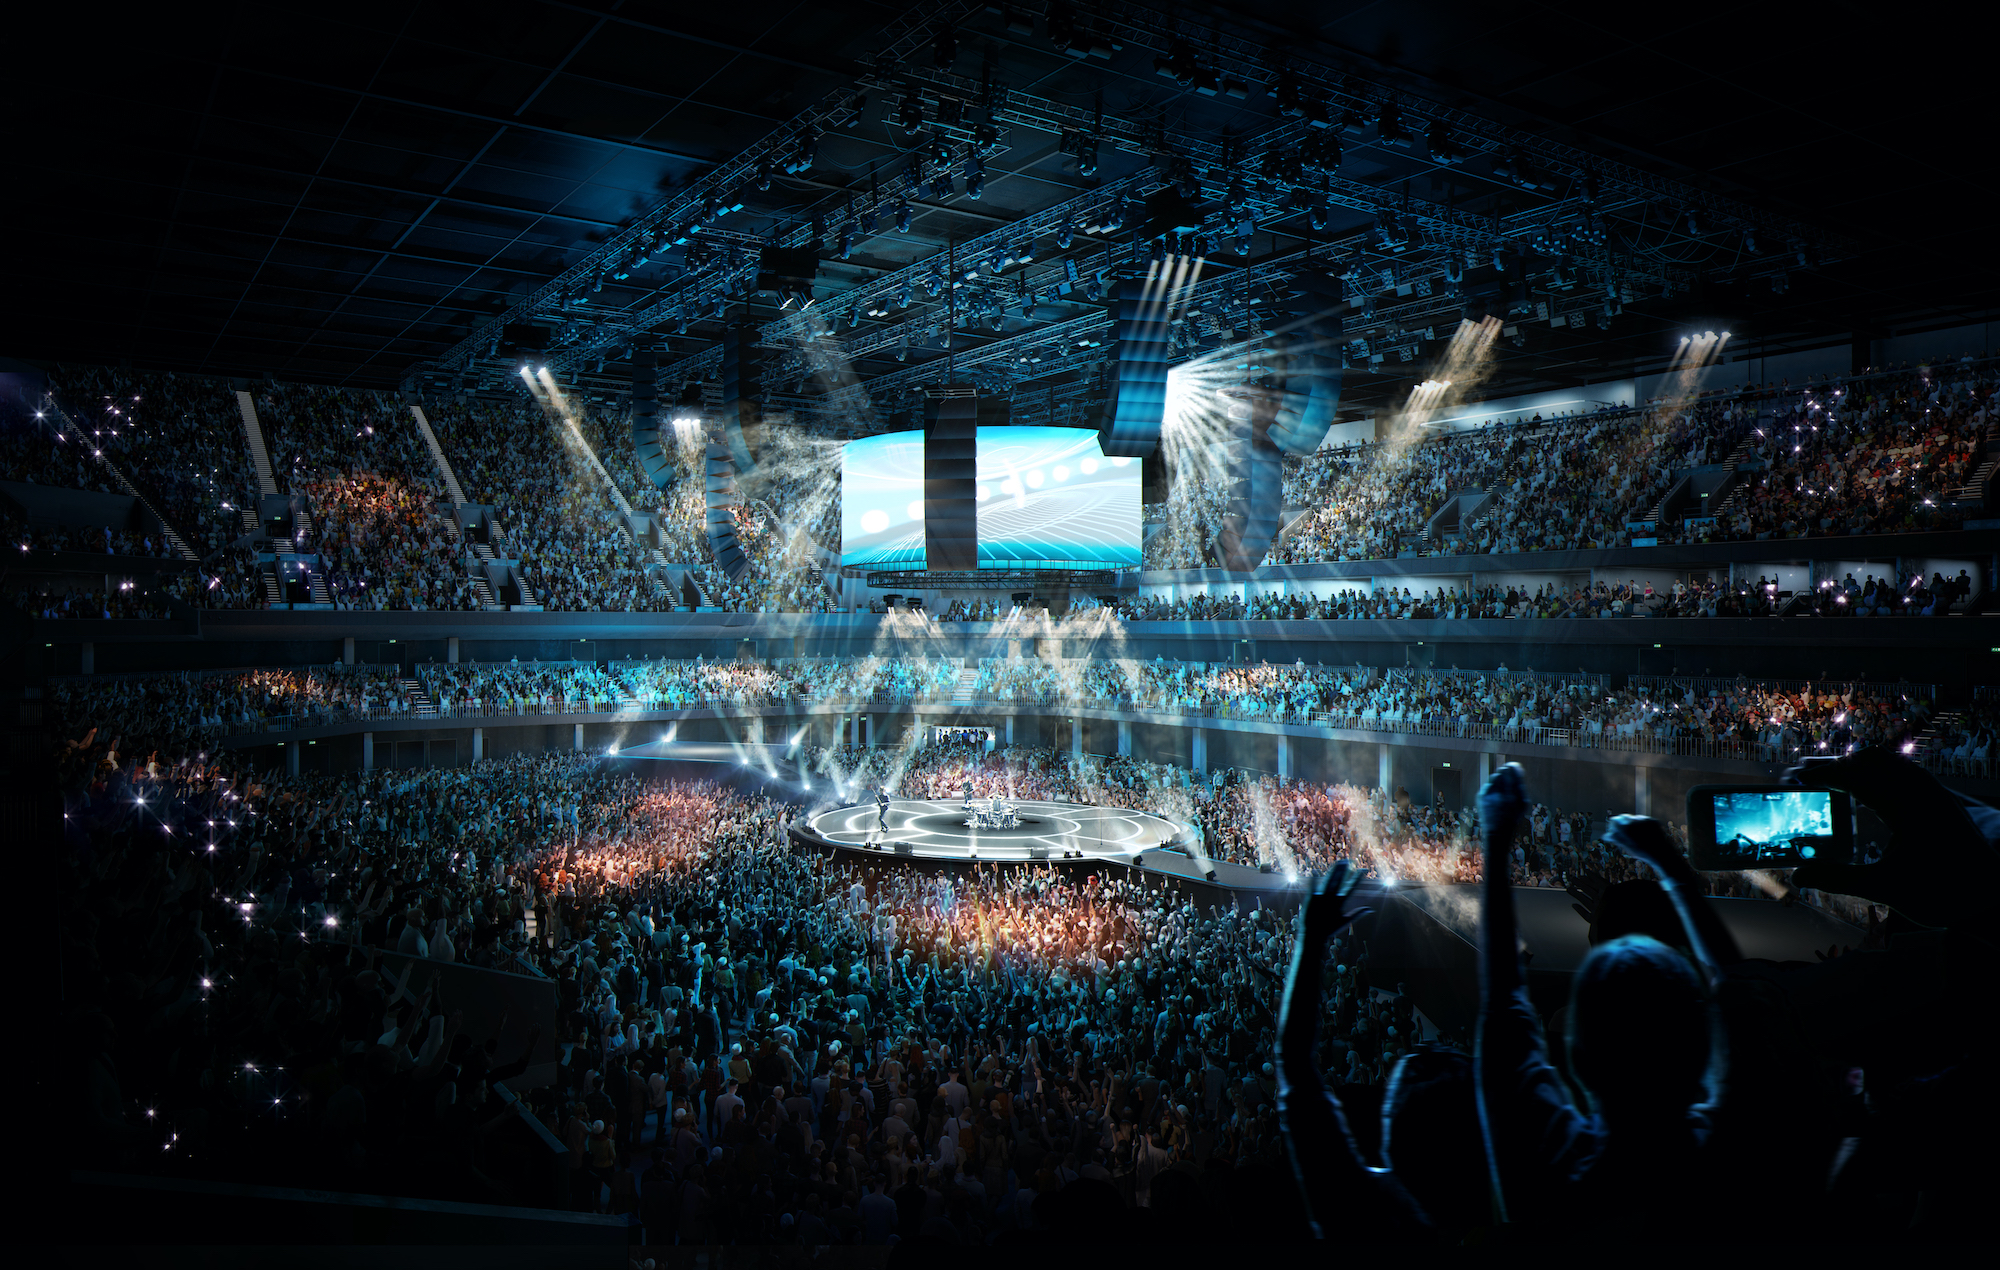 Plans confirmed for huge new 23,500 capacity arena in Manchester